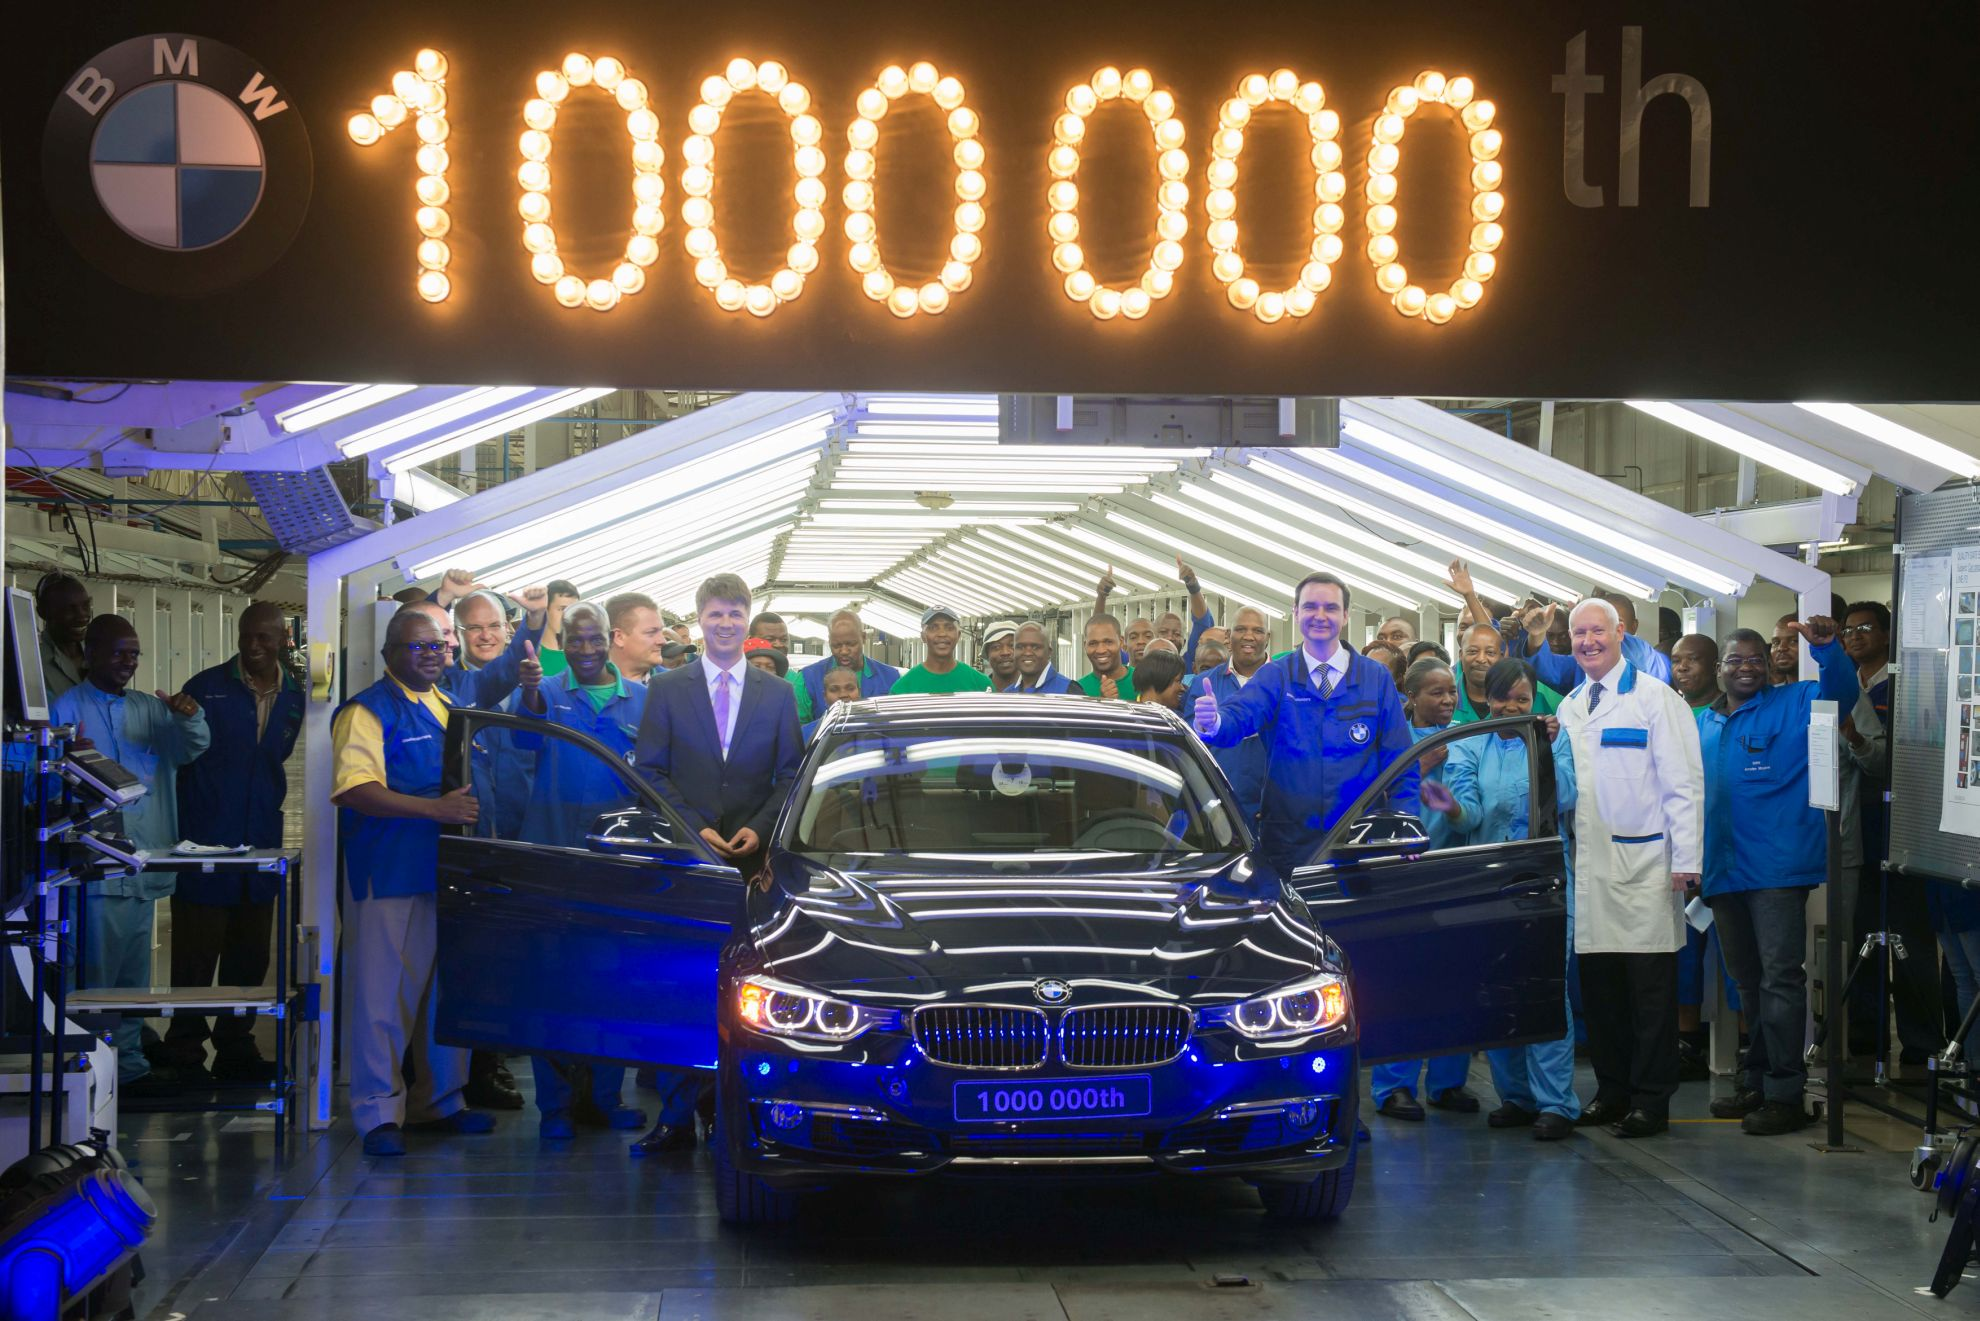 BMW-Group-South-Africa-named-number-one-employer-in-the-local-automotive-industry-1